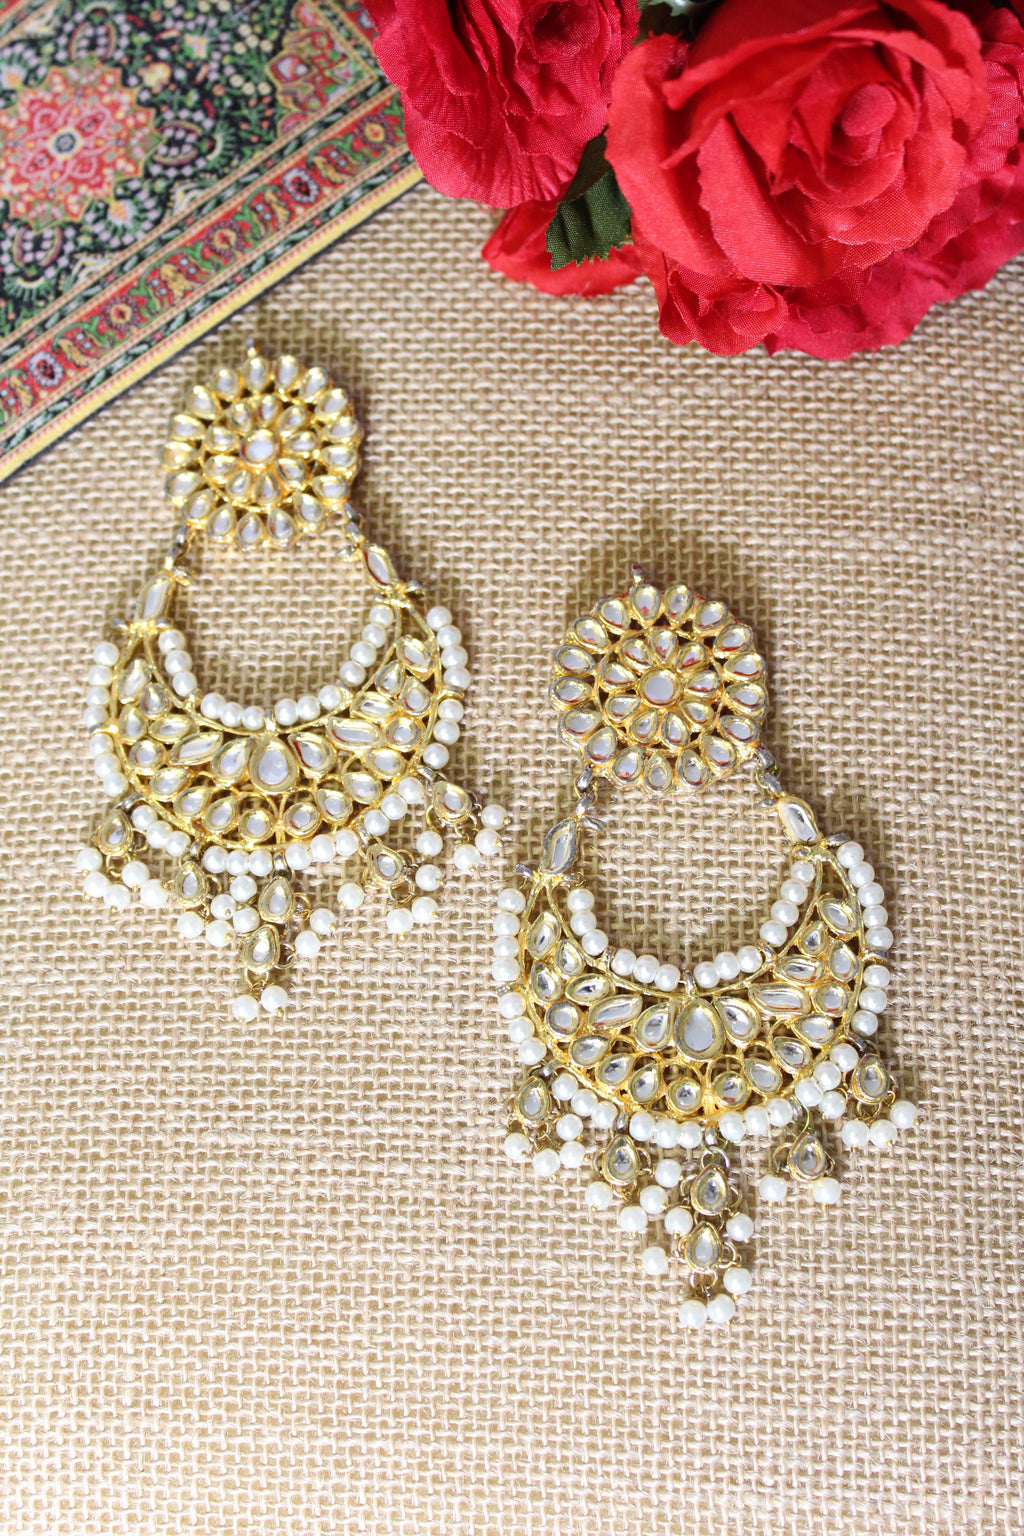 Kundan chandbali with pearls